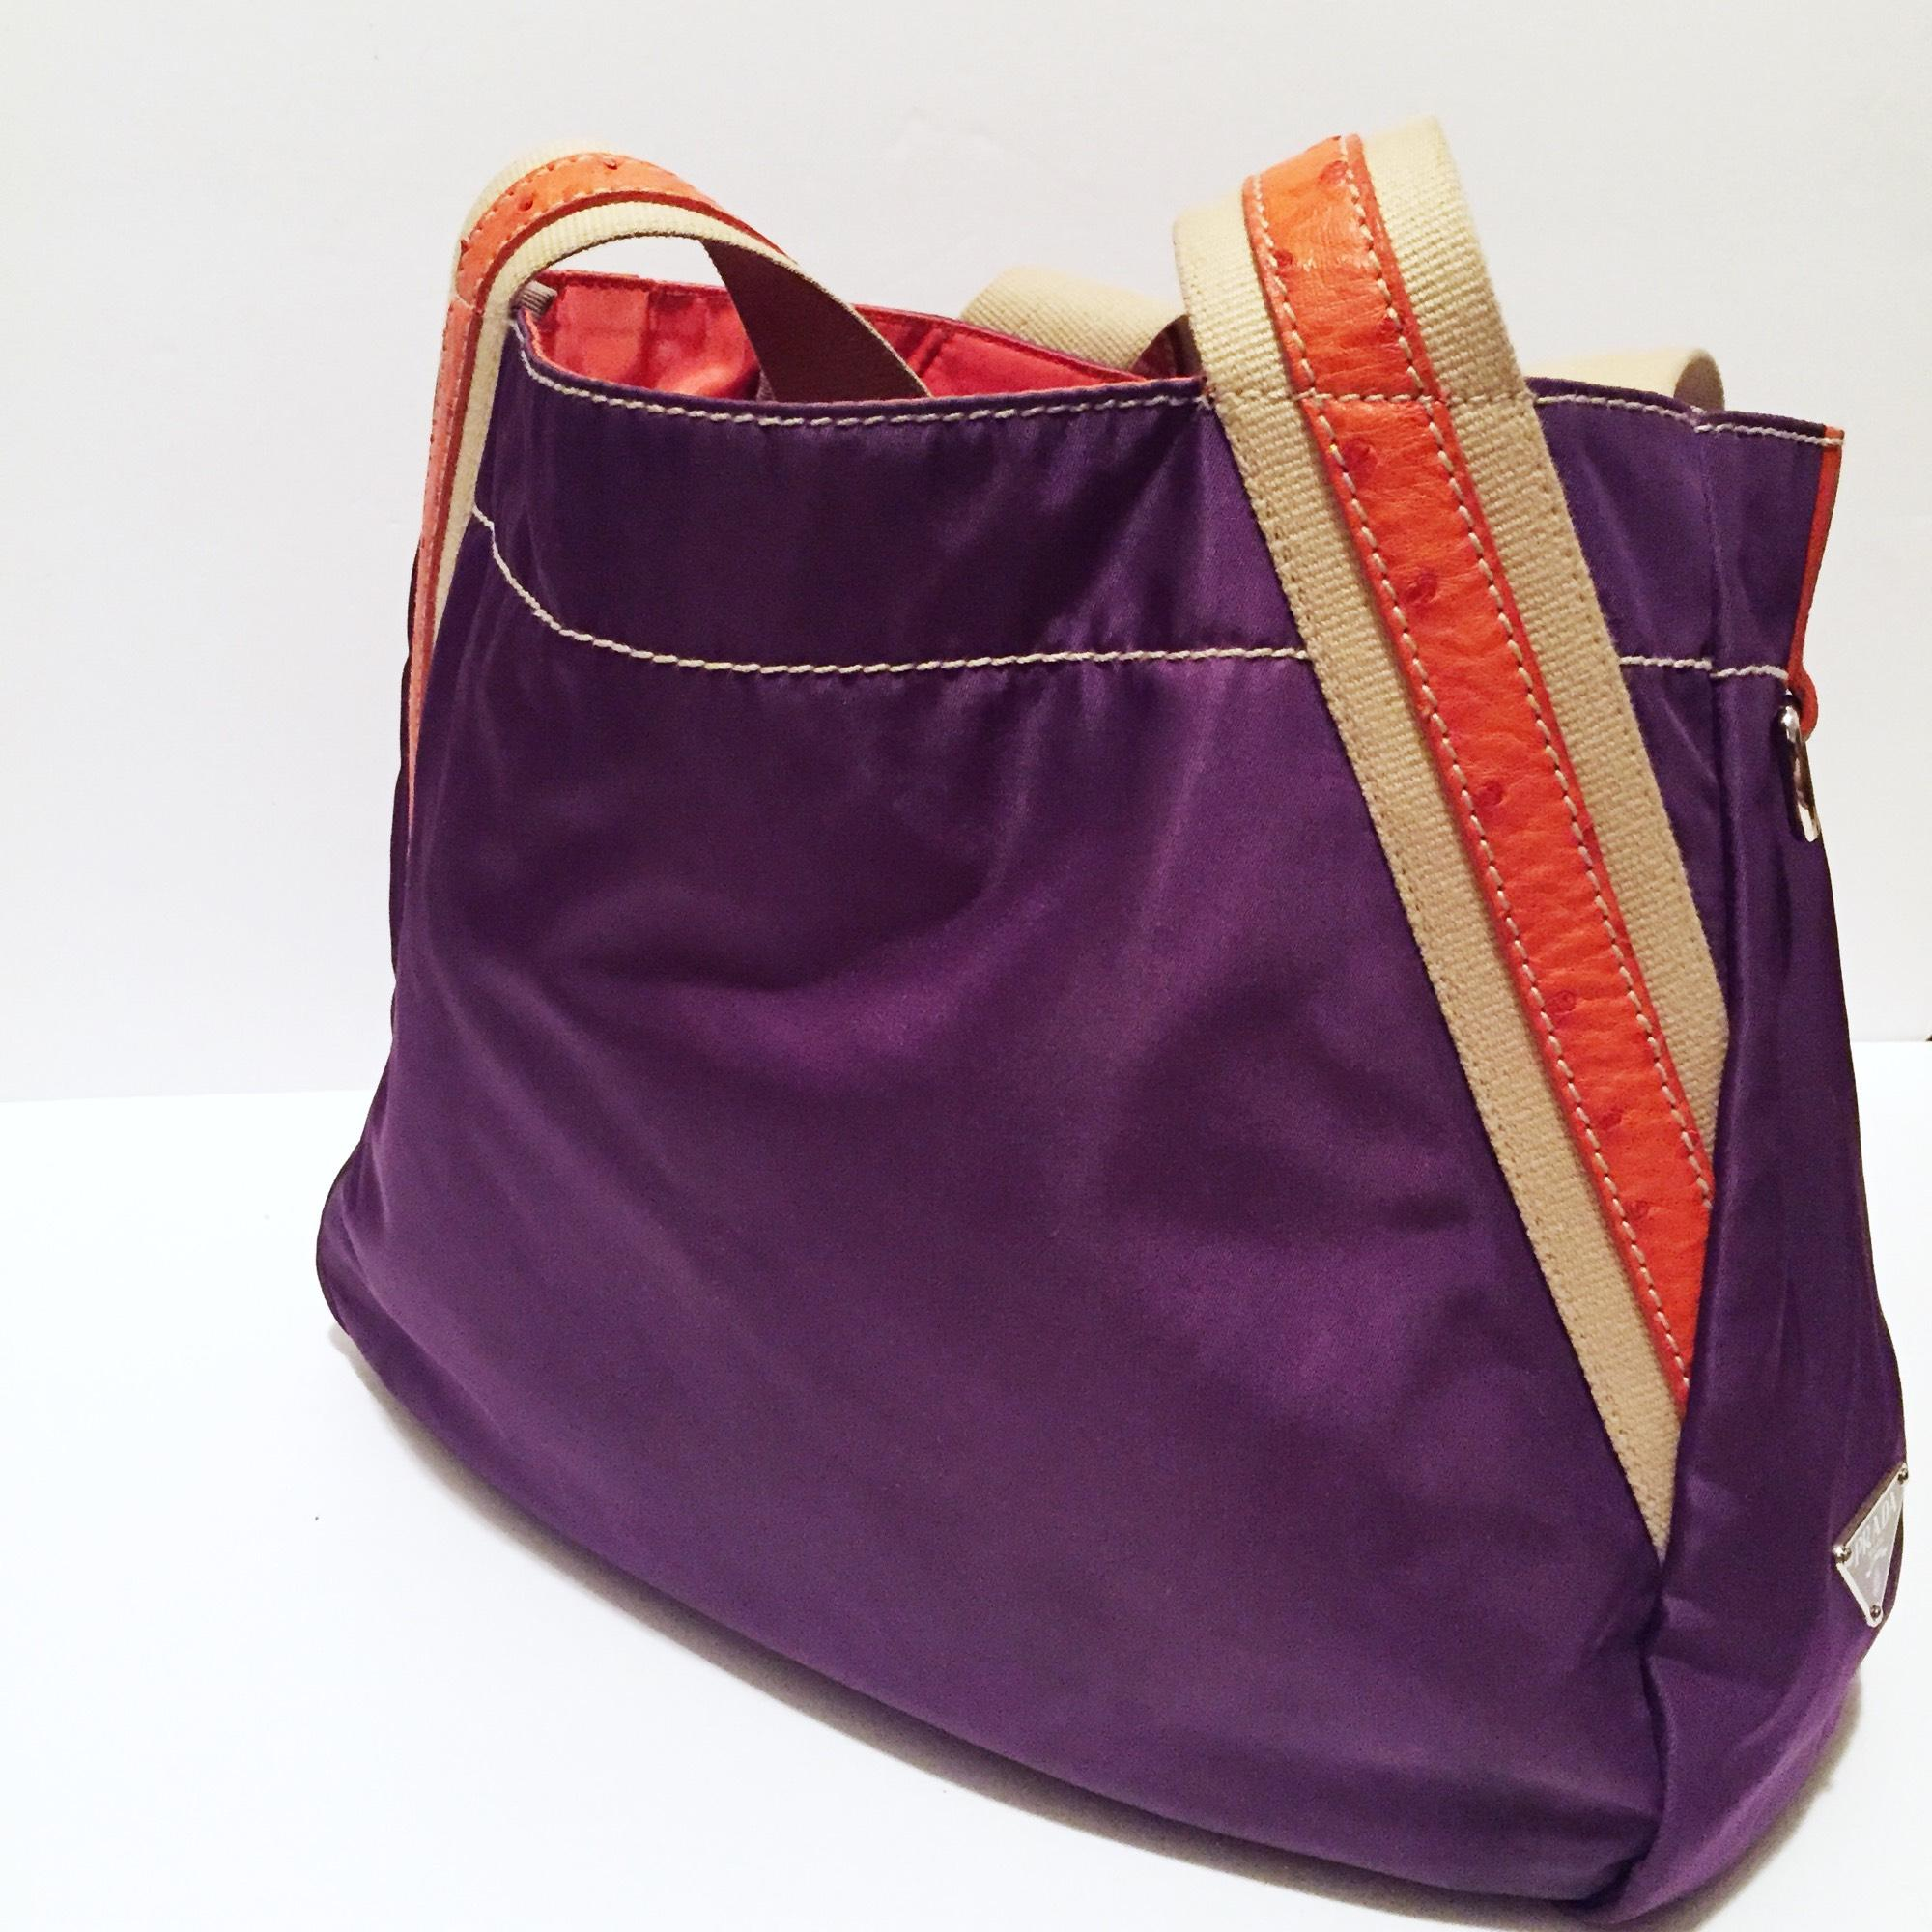 e4b5bea936c9fe ... canada prada orange ostrich tote with brooch charms purple nylon  satchel tradesy 9fc3b e7e93